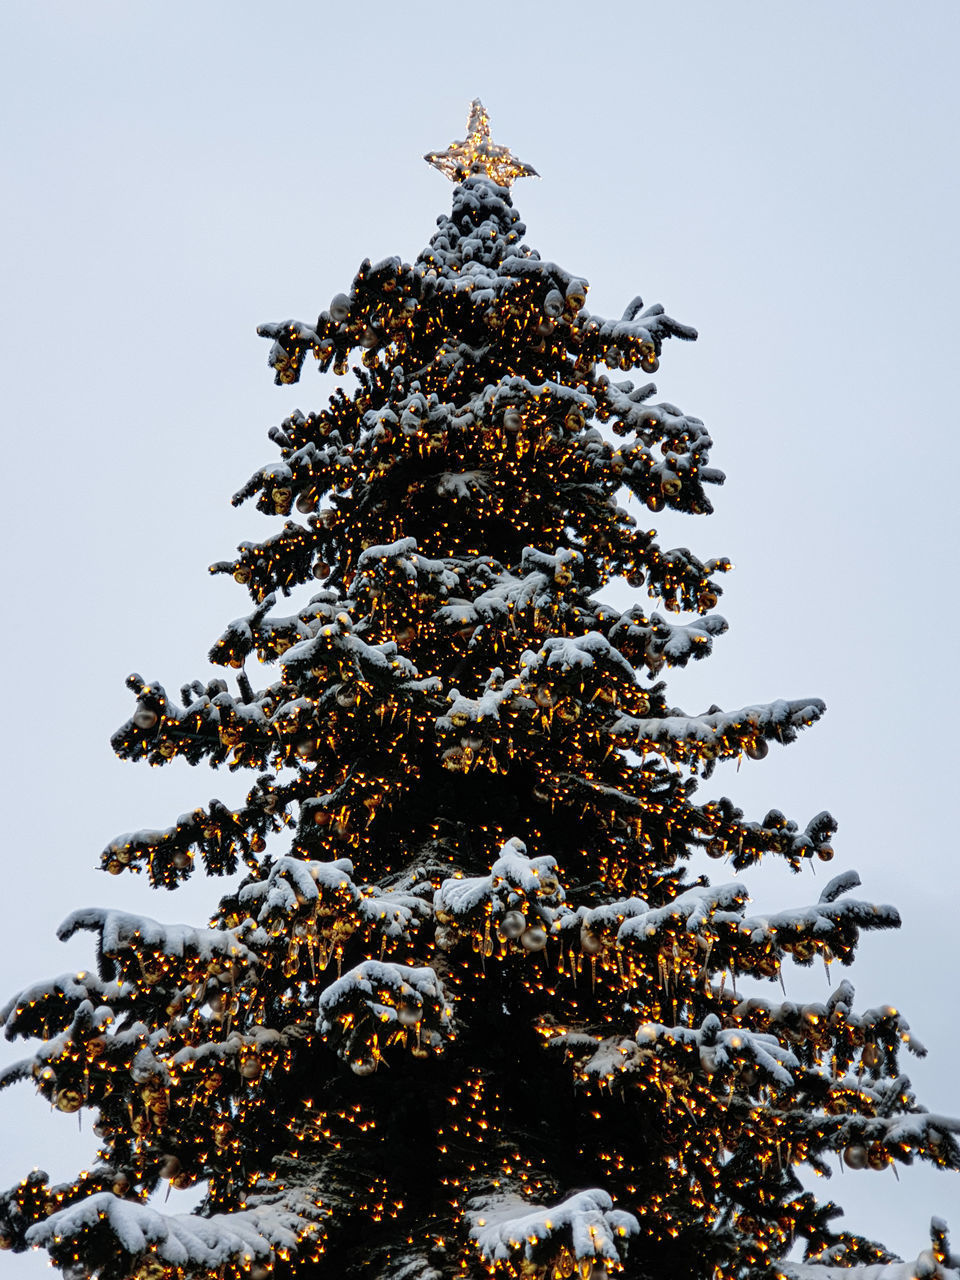 LOW ANGLE VIEW OF CHRISTMAS TREE AGAINST SKY